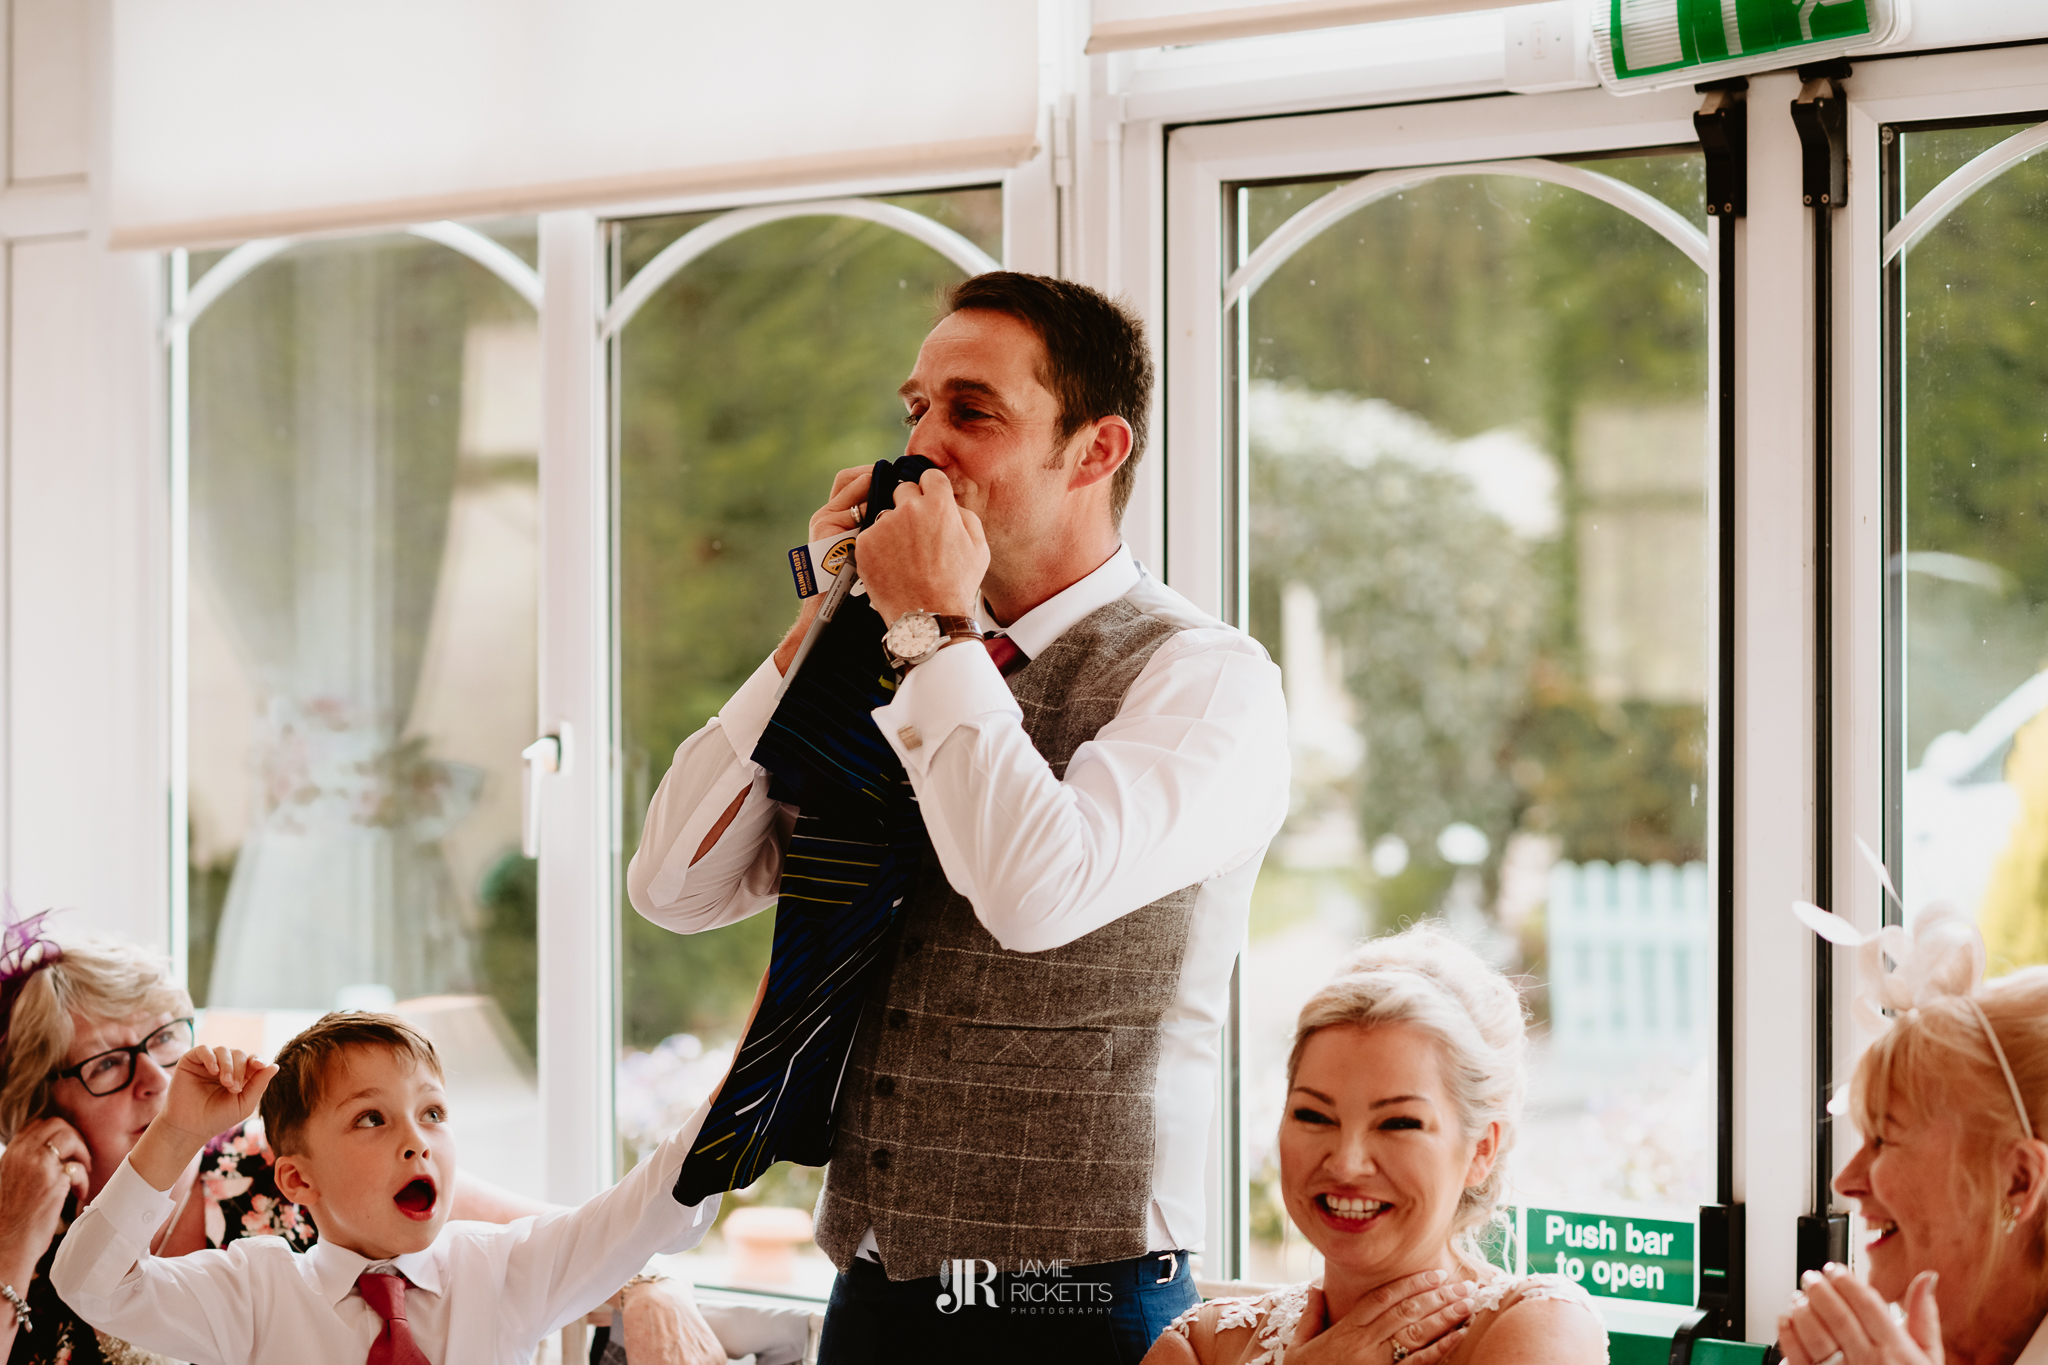 Wroxeter-Hotel-Wedding-Photography-In-Shropshire-By-Shropshire-Wedding-Photographer-Jamie-Ricketts-180.JPG